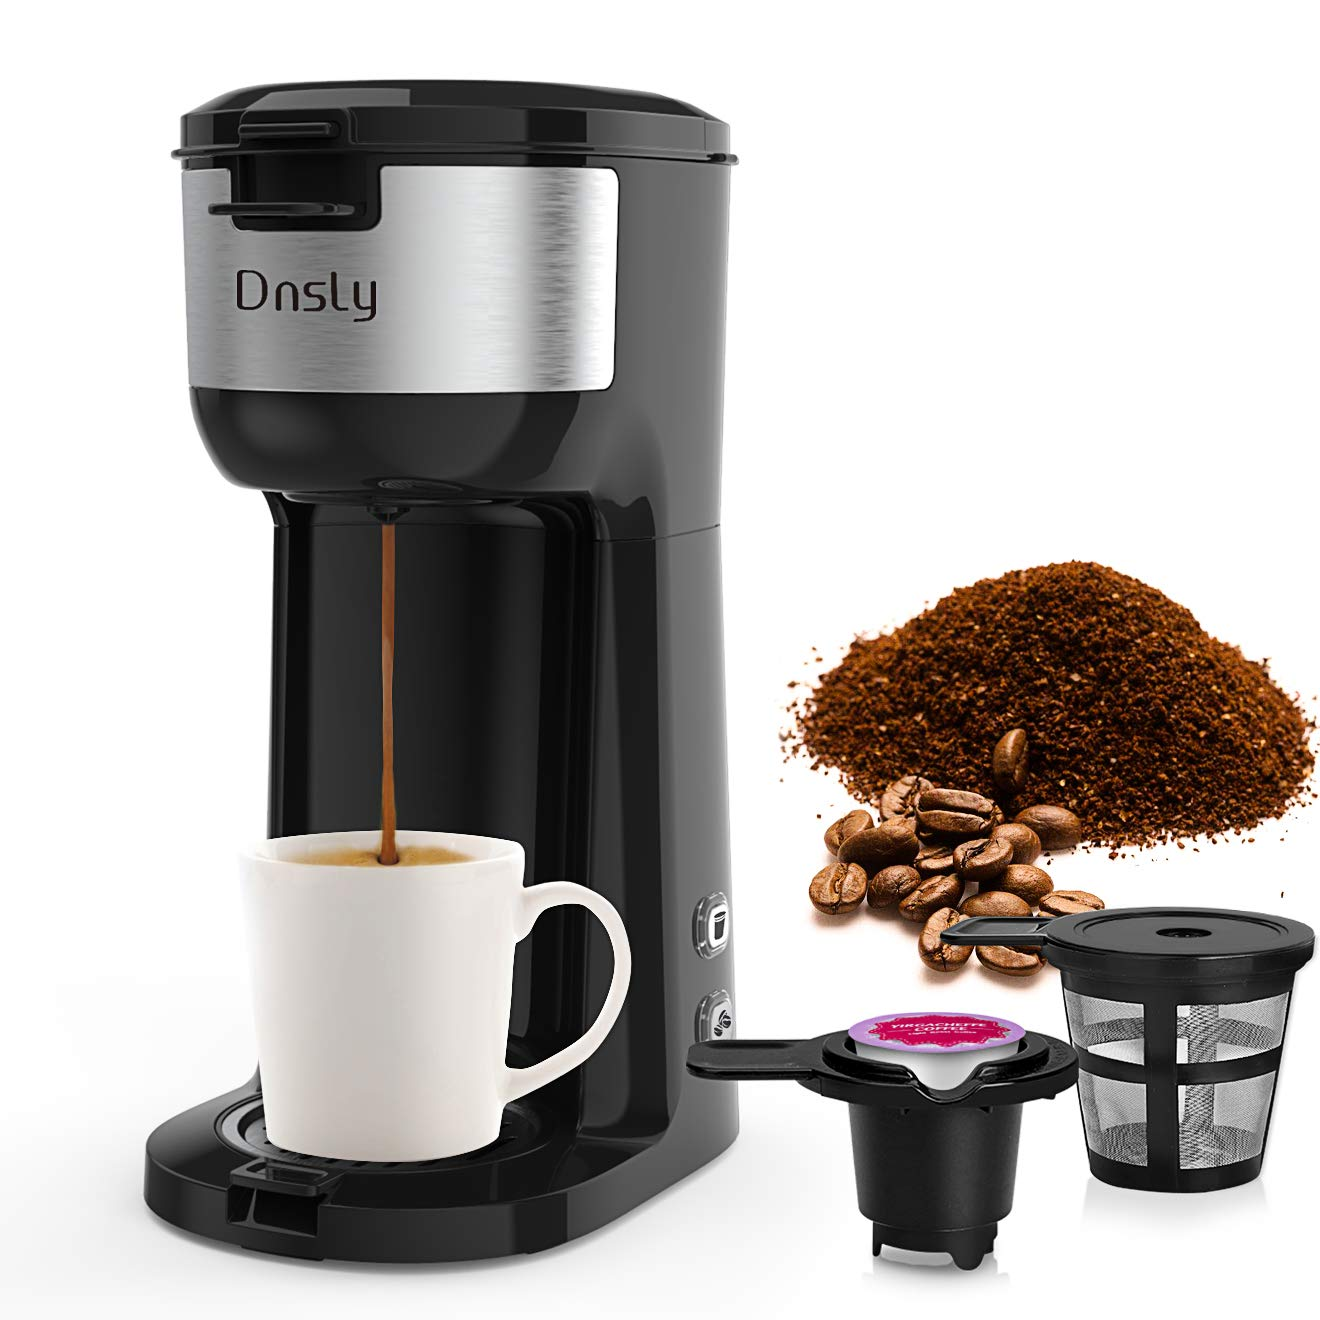 Dnsly Coffee Maker Single Serve, K-Cup Pod & Ground Coffee 2 in 1 Coffee Machine, Strength-Controlled Self Cleaning Function, Advanced Black by Dnsly